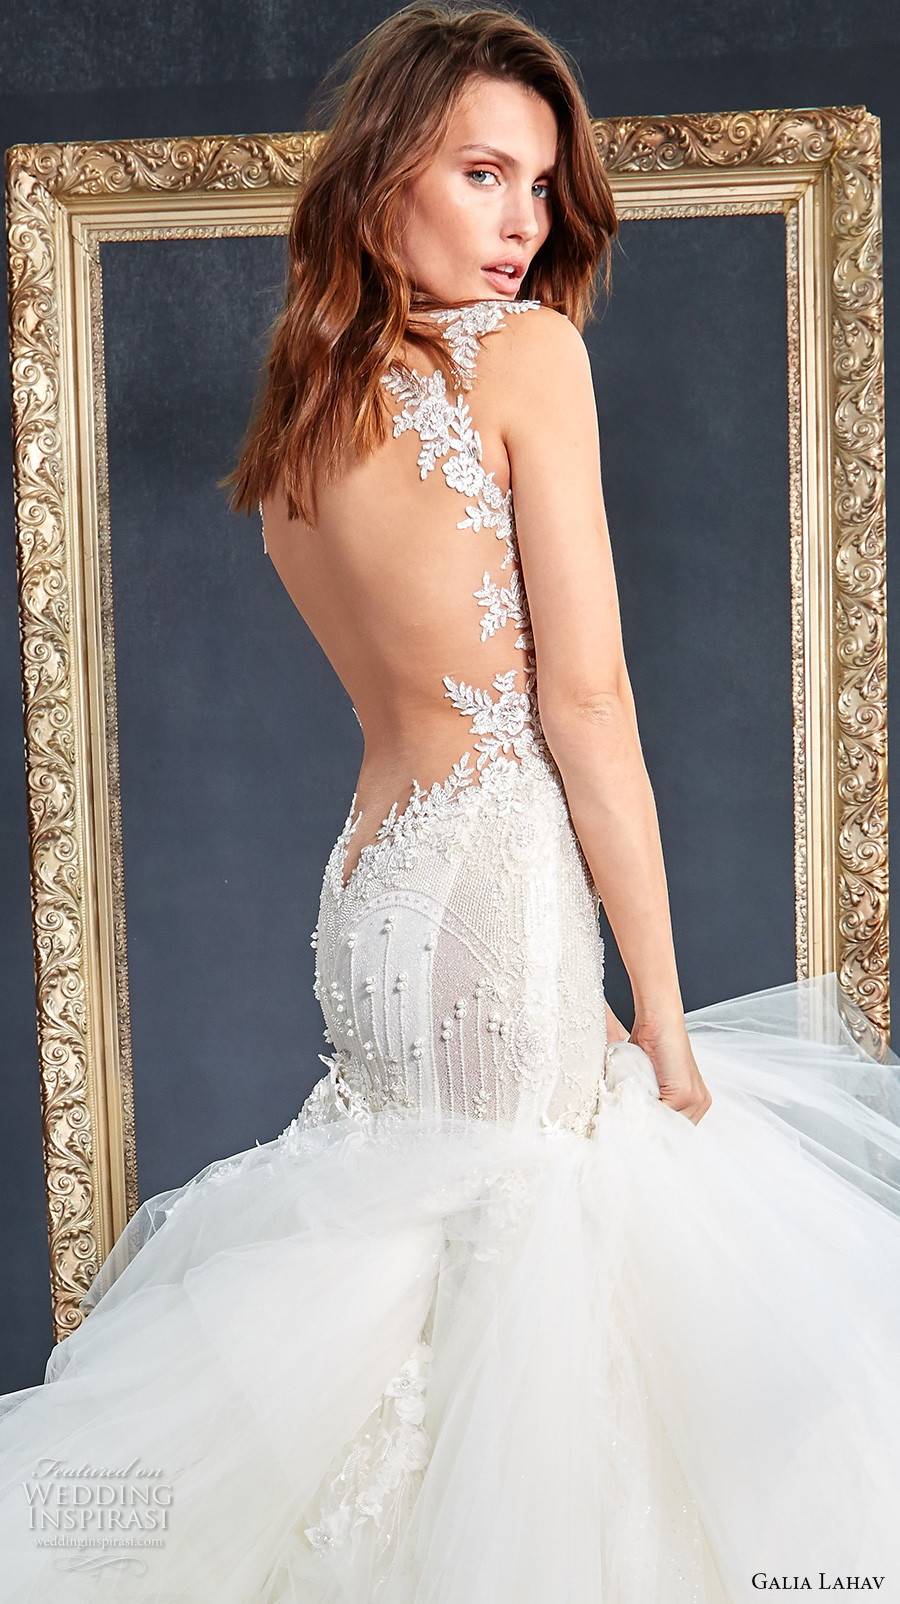 galia lahav couture fall 2017 bridal sleeveless sweetheart neckline bustier heavily embellished bodice sexy glamorous princess mermaid wedding dress low back royal train (new suzanne) zbv